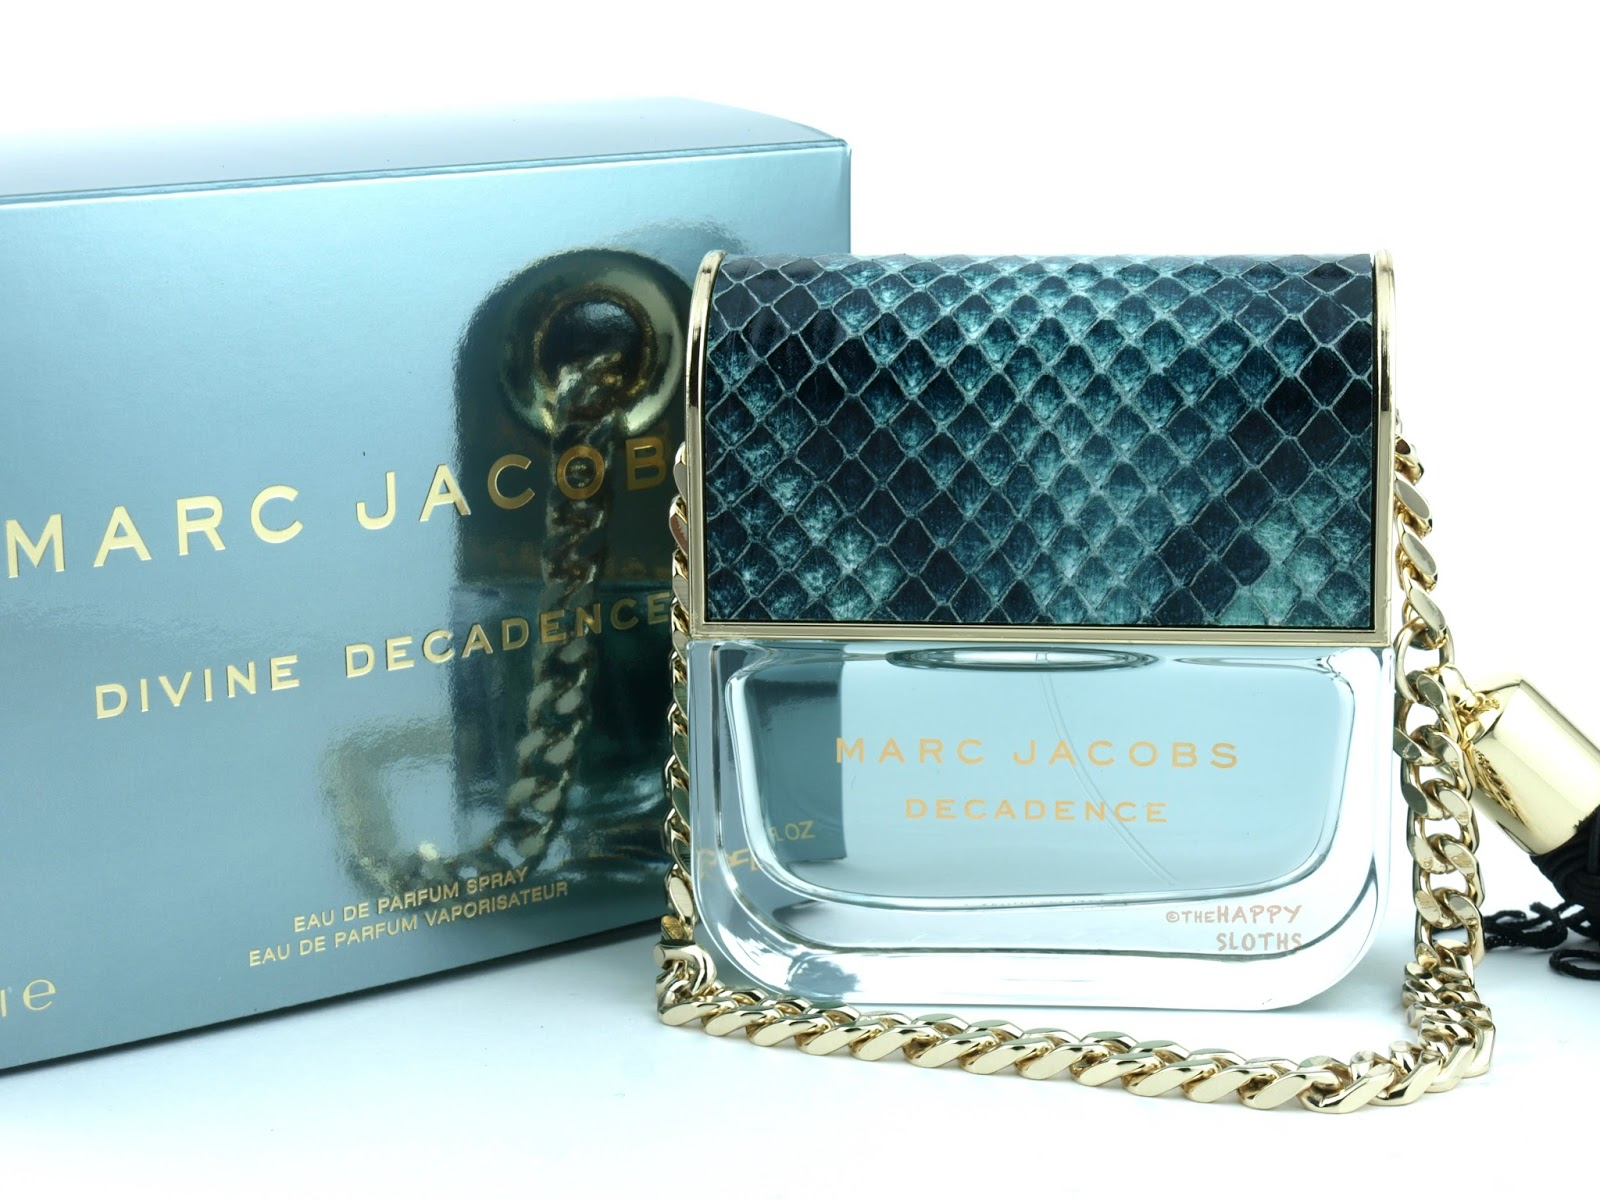 cf6773bf6 Marc Jacobs Divine Decadence Eau de Parfum  Review